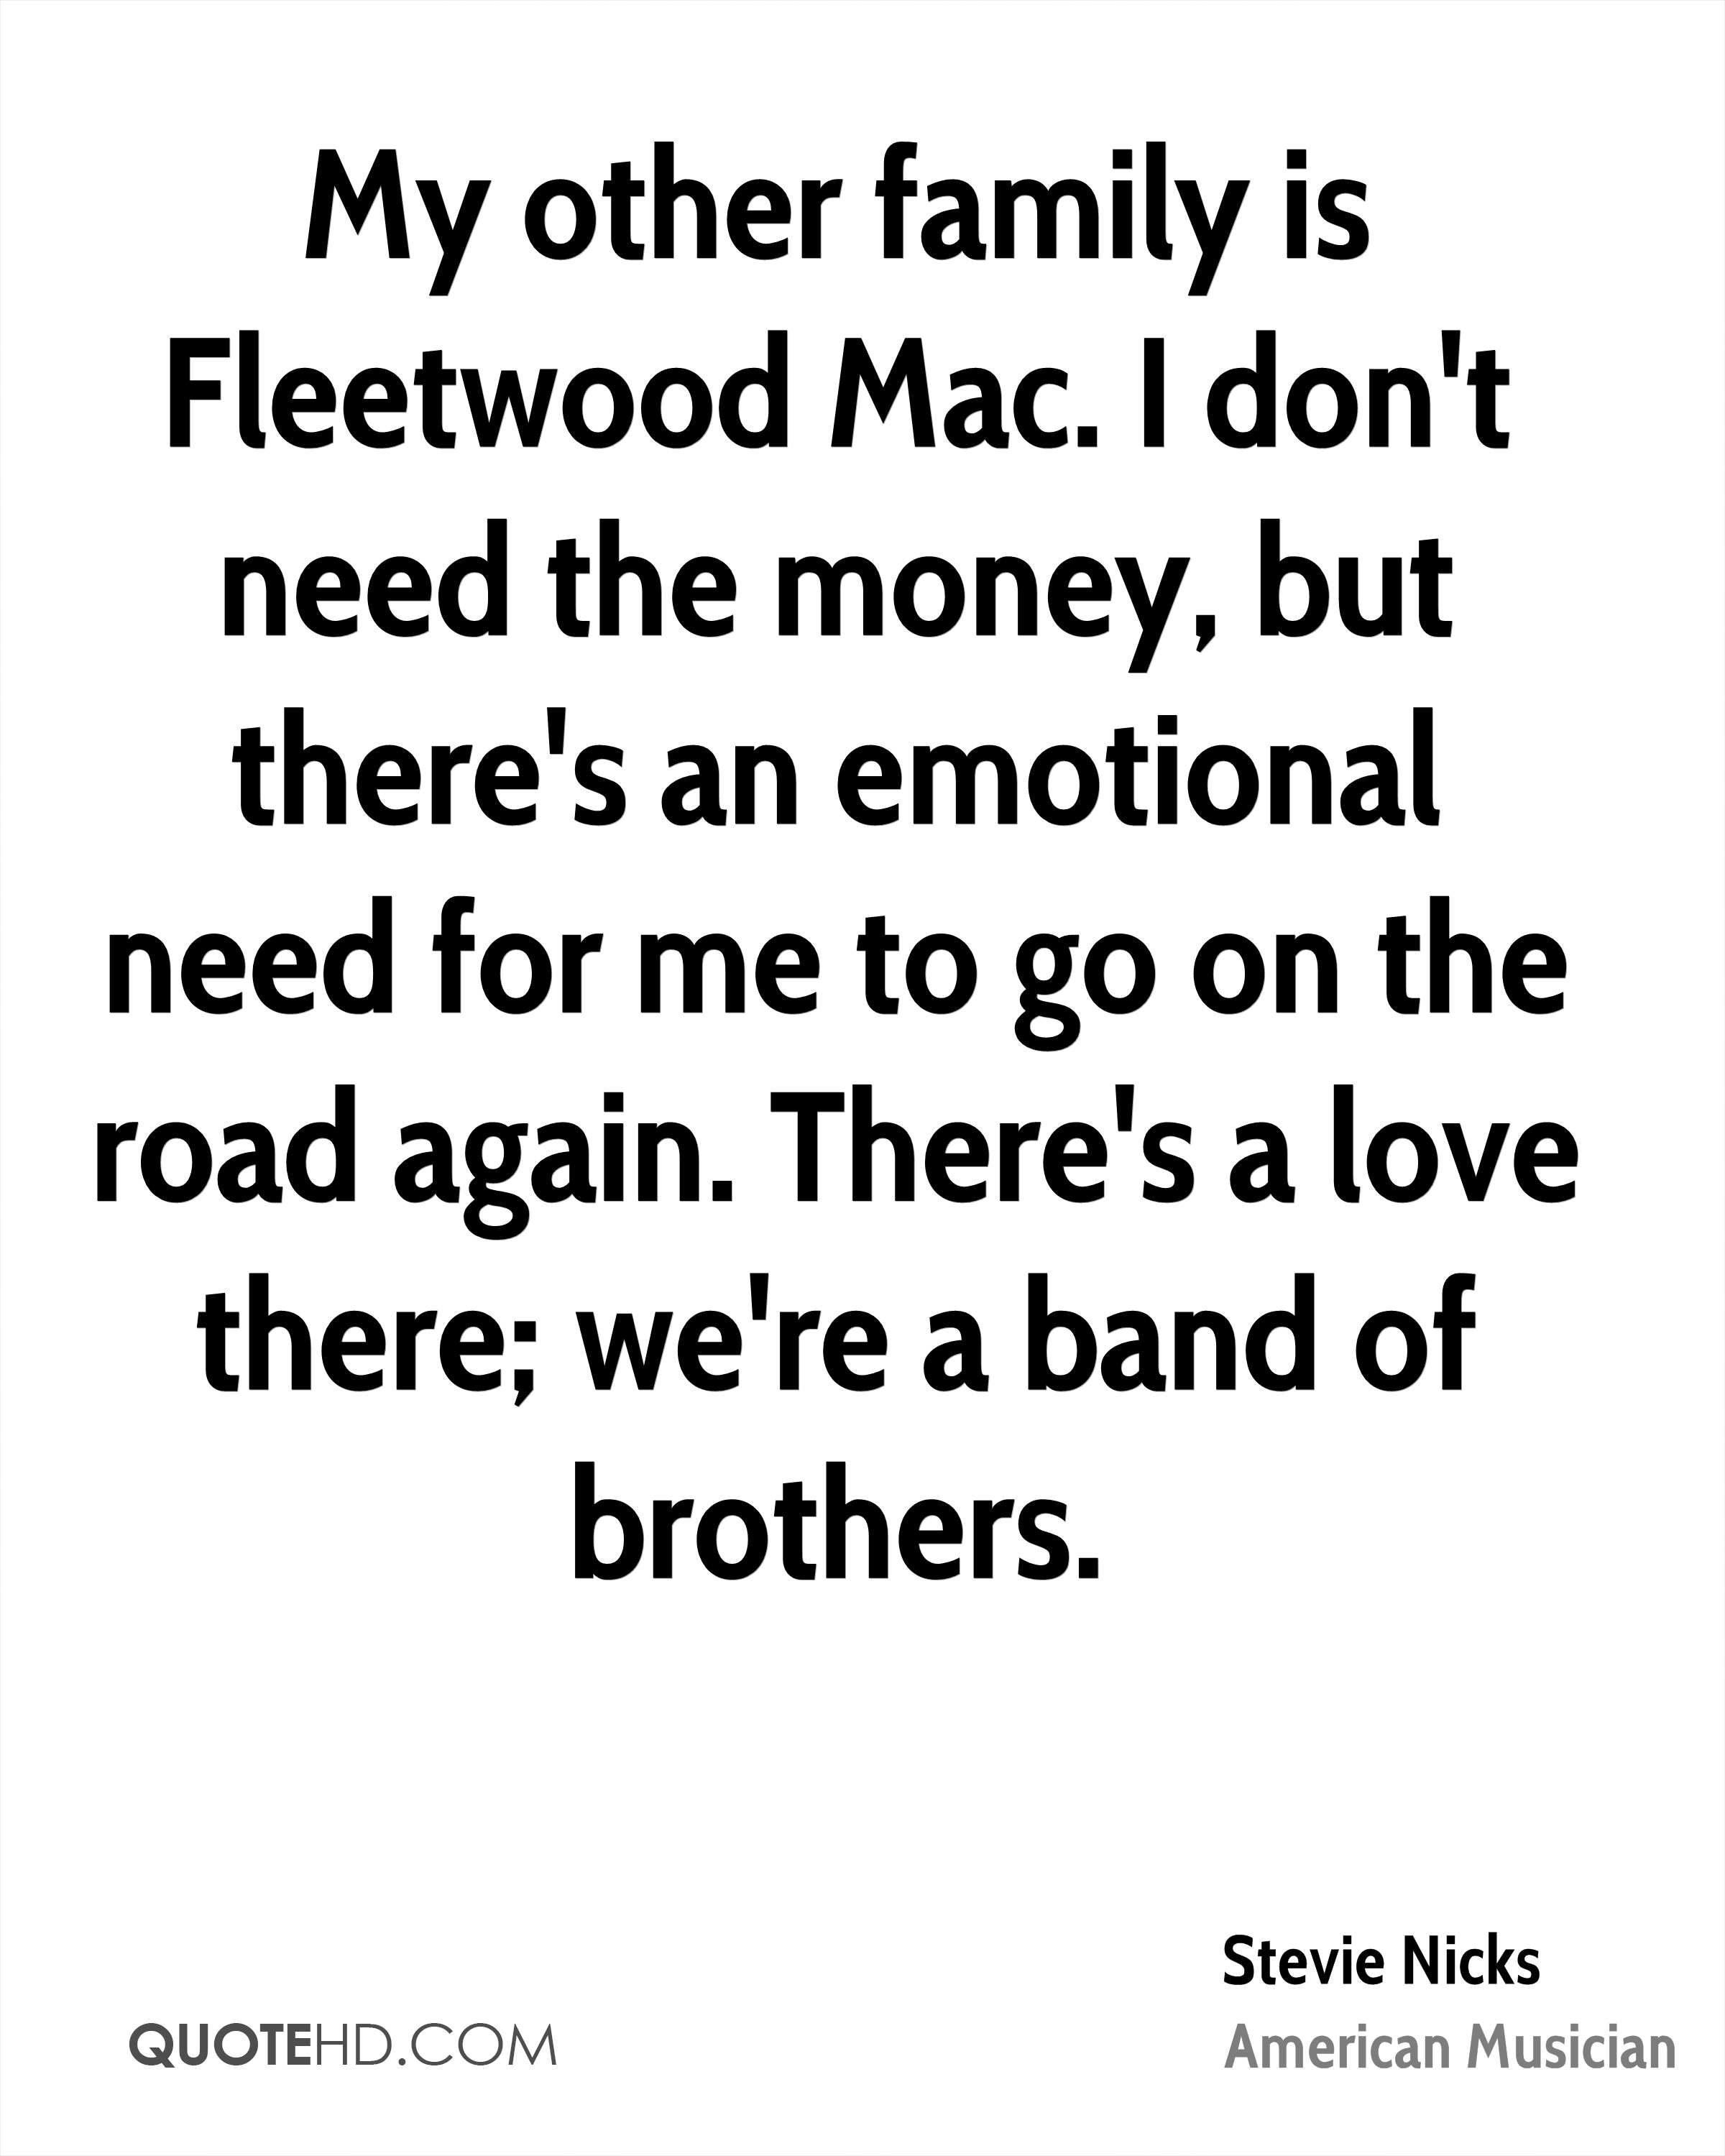 My other family is Fleetwood Mac. I don't need the money, but there's an emotional need for me to go on the road again. There's a love there; we're a band of brothers.